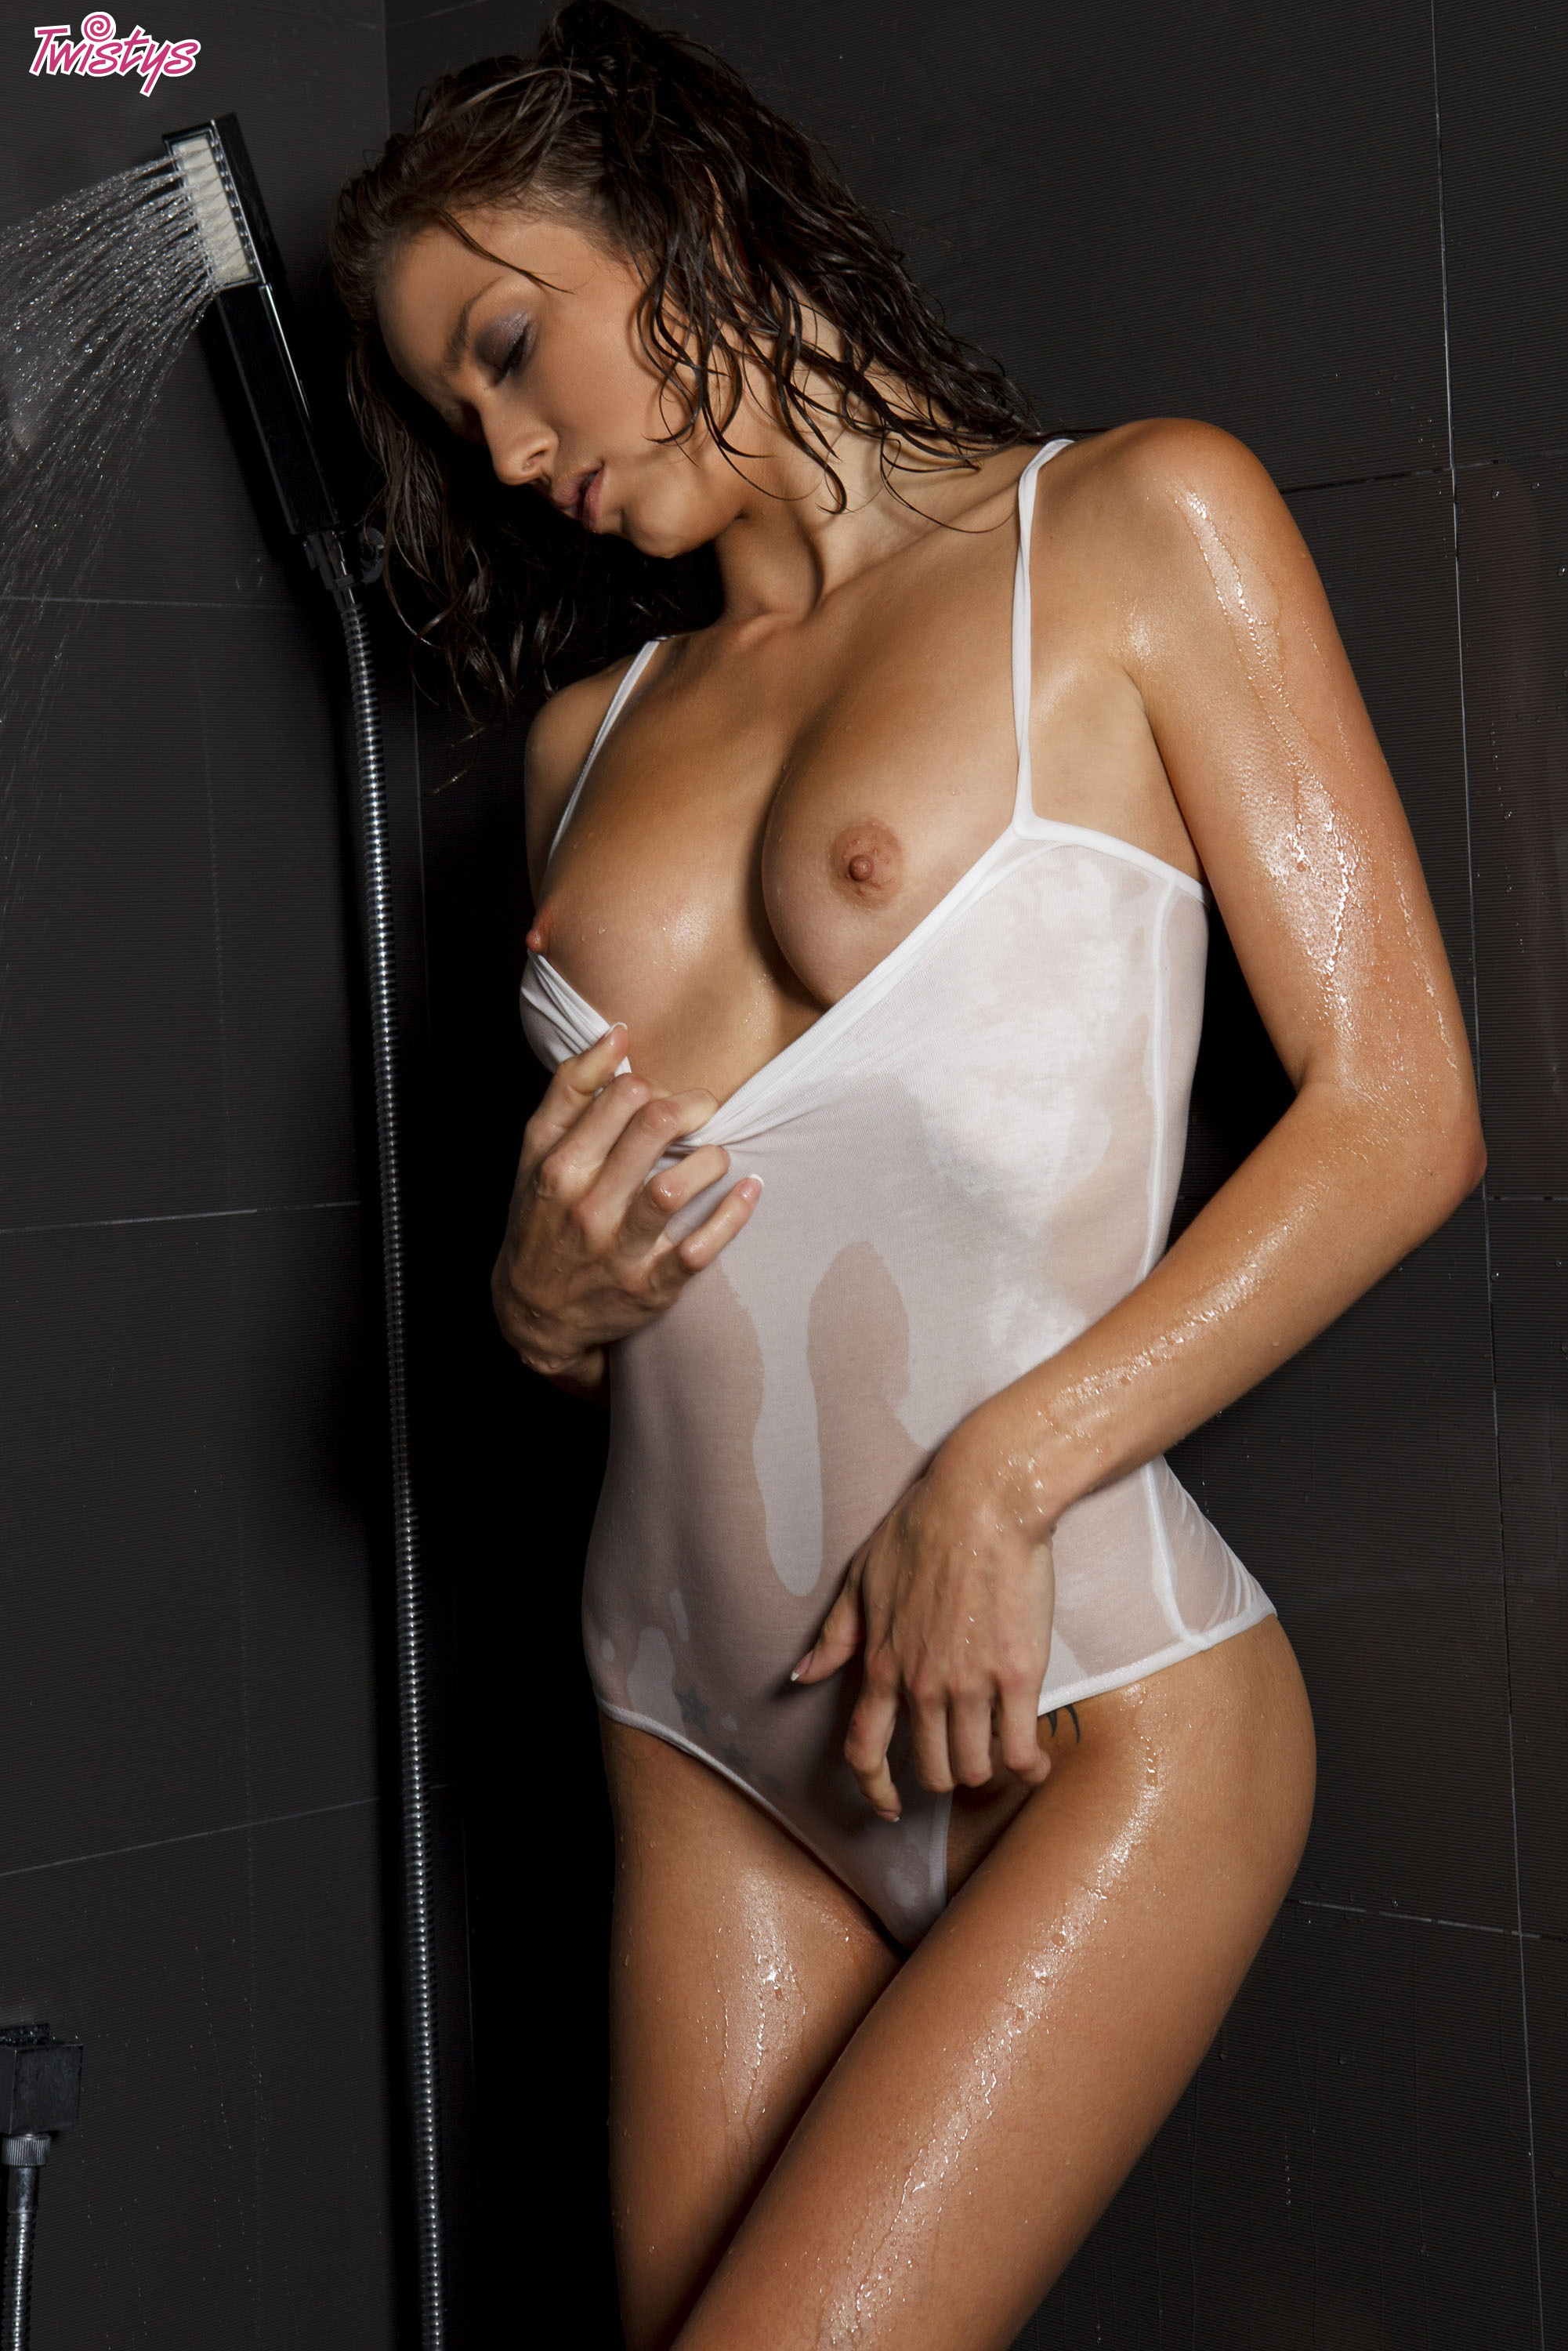 Malena morgan wet